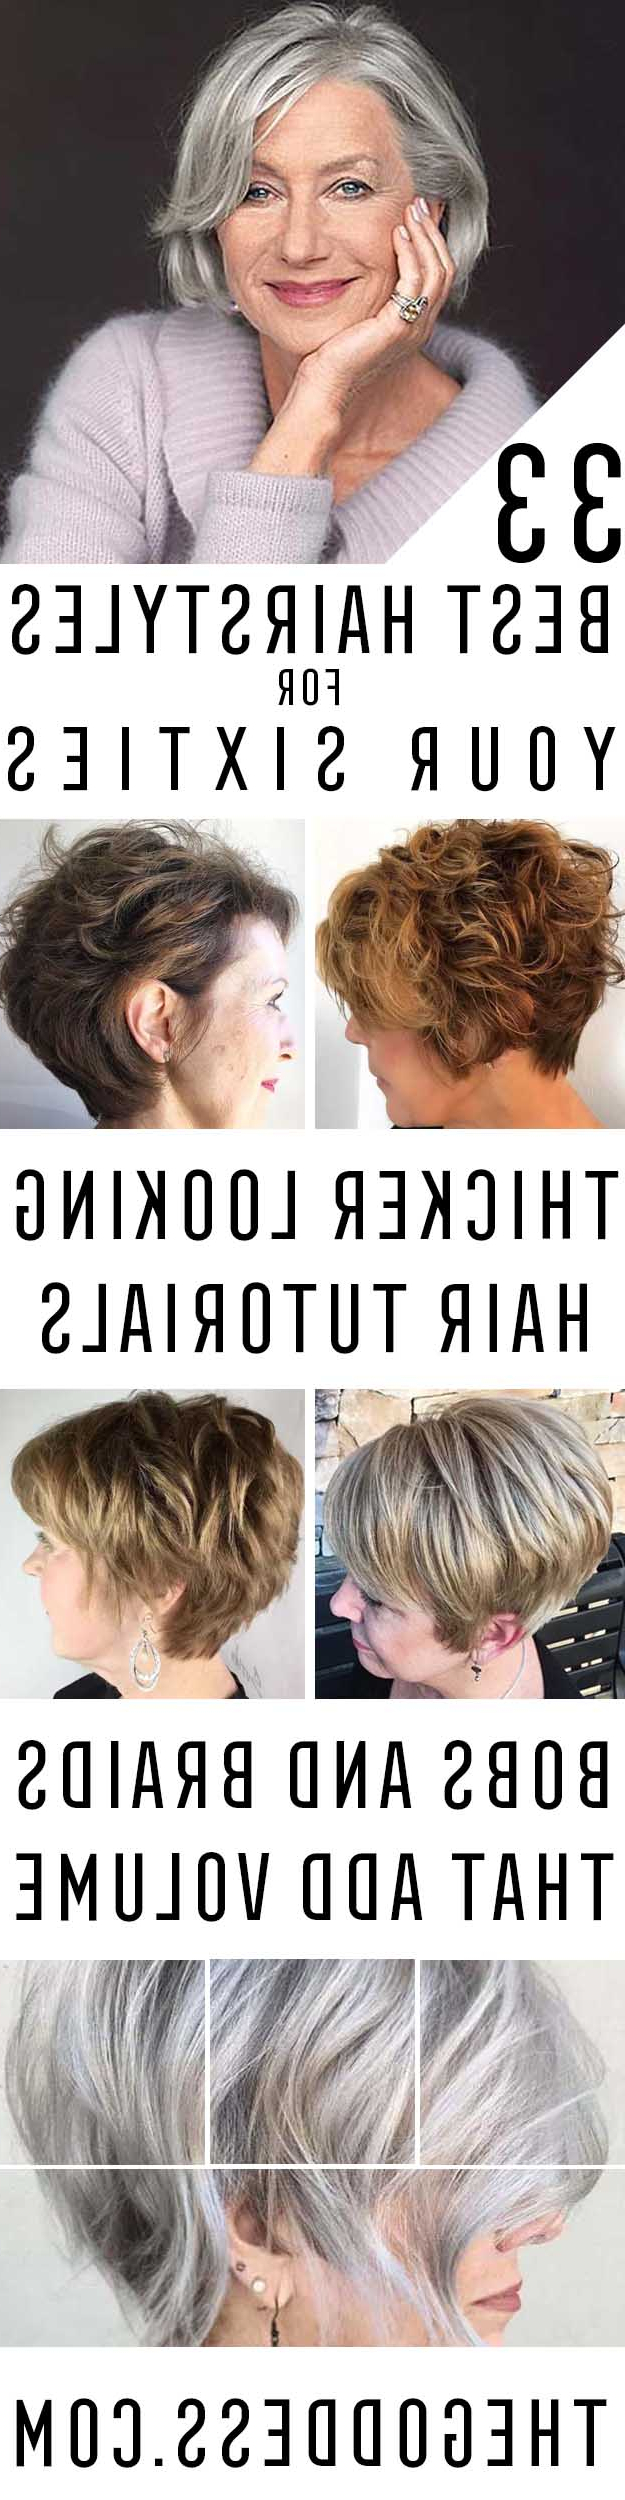 33 Best Hairstyles For Your 60S – The Goddess With Regard To Short Haircuts For 60 Year Olds (View 16 of 25)